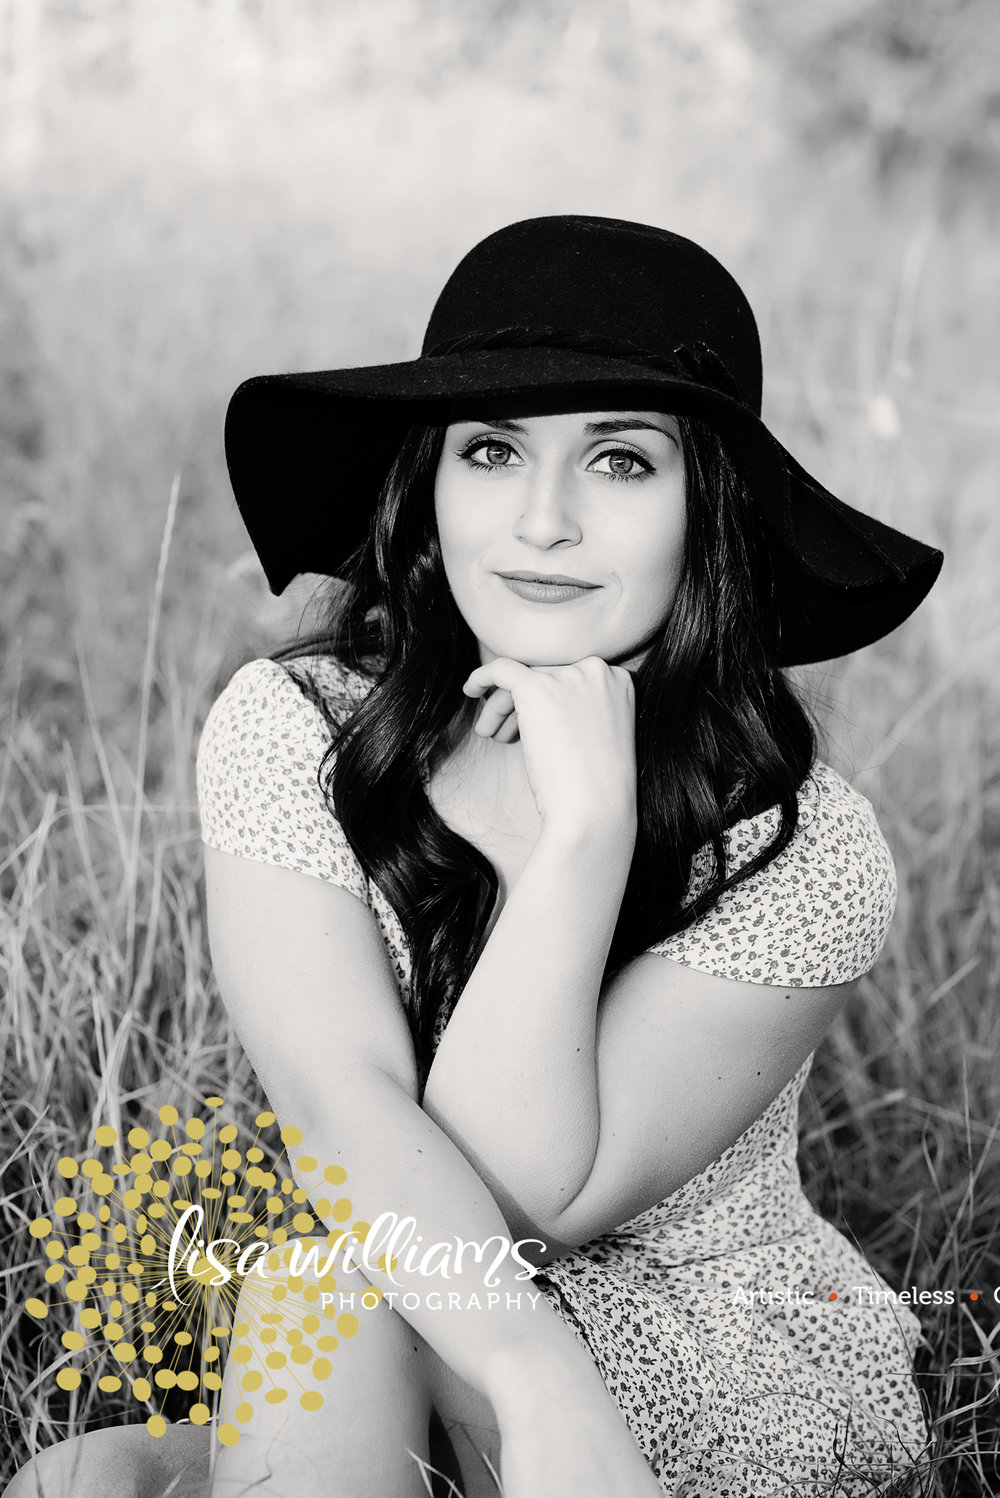 Lisa Williams photography – grass valley portrait photographer- senior portrait photographer- northern California senior portraits- Nevada county senior portraits – Colfax Senior Portraits – Rocklin Senior Portraits- Roseville Senior Portraits – t-12.jpg